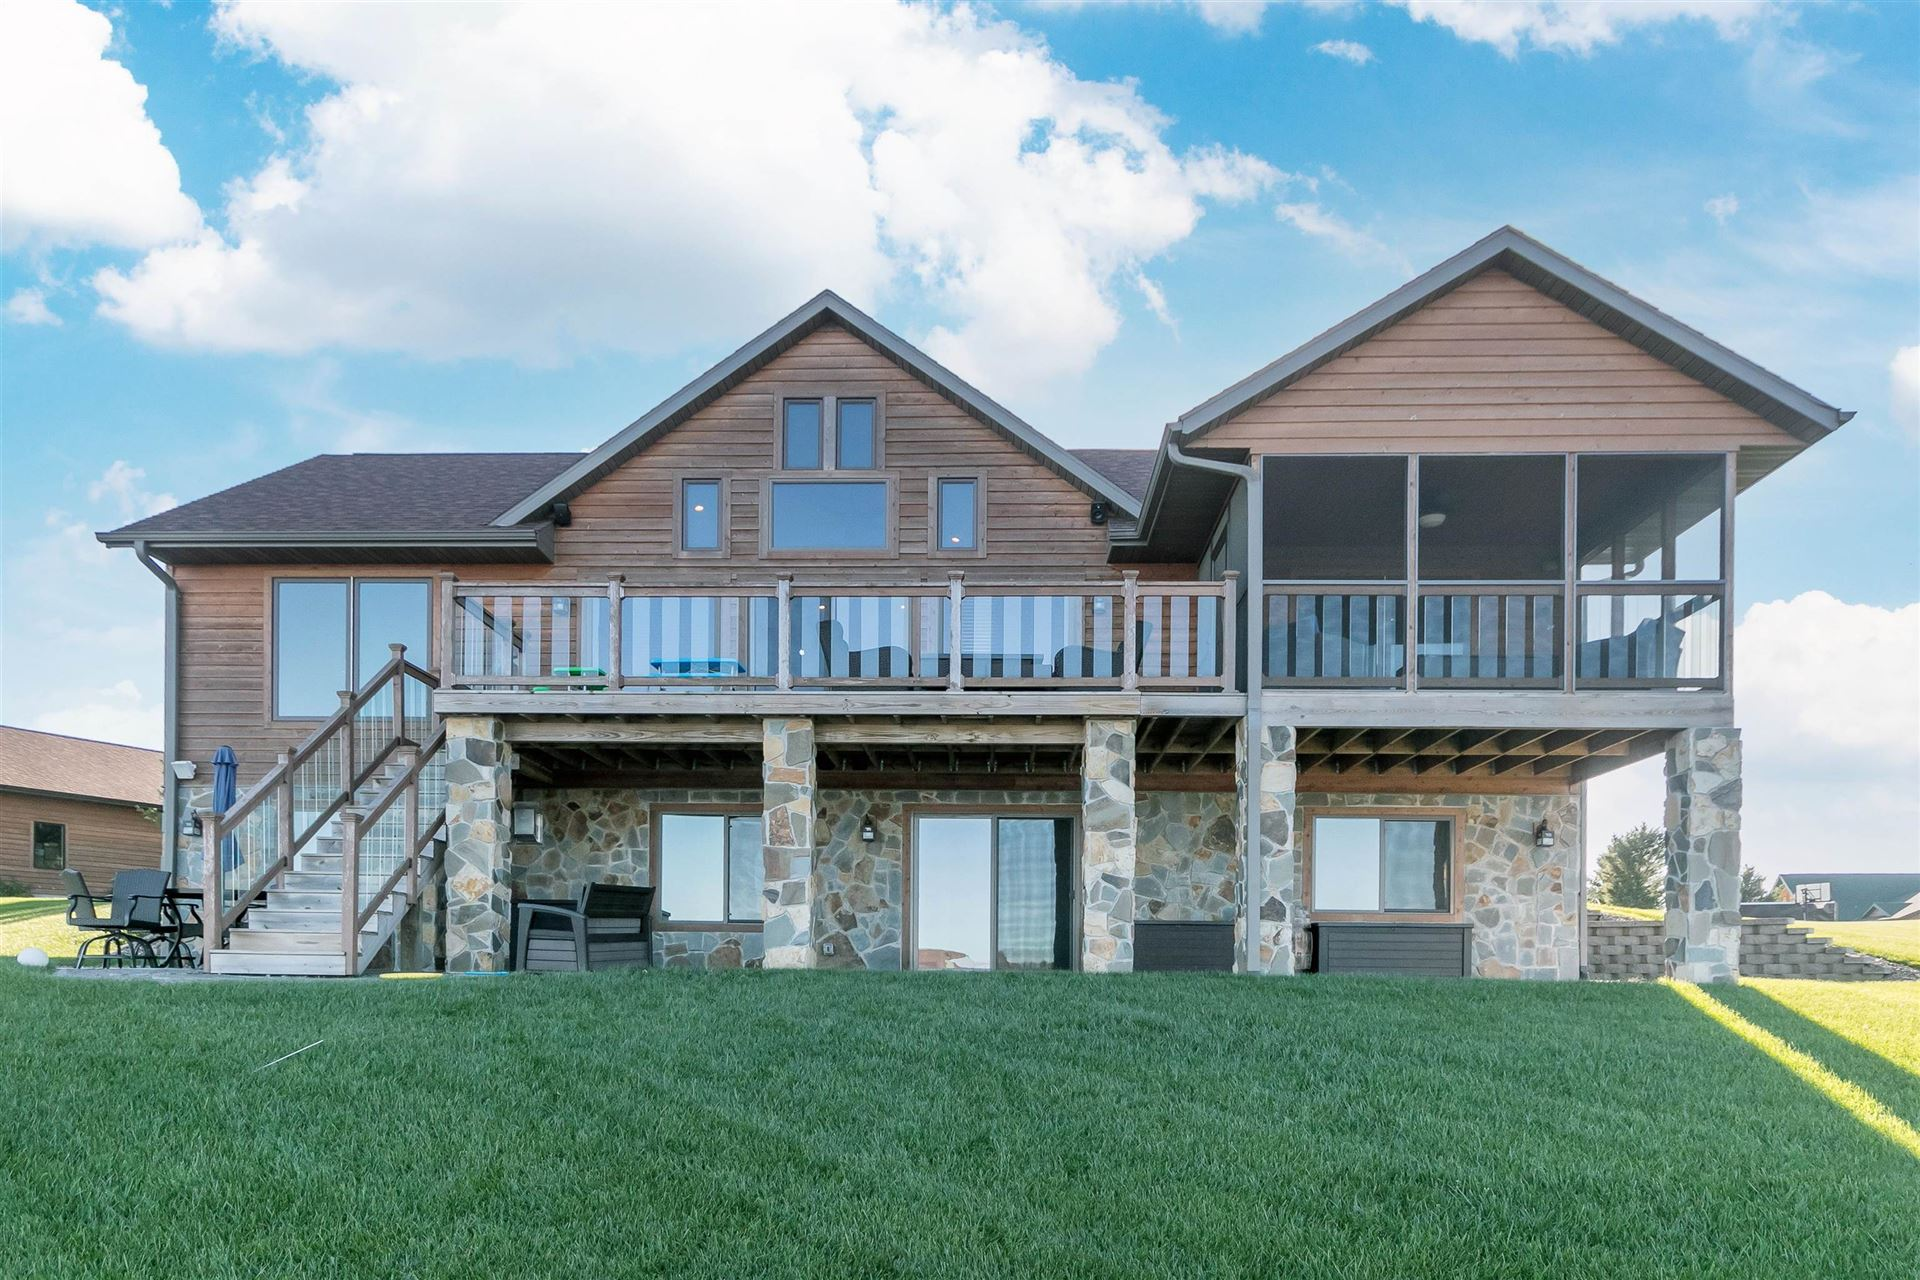 N8428 Lookout Point Ct, New Lisbon, WI 53950 - #: 1922450